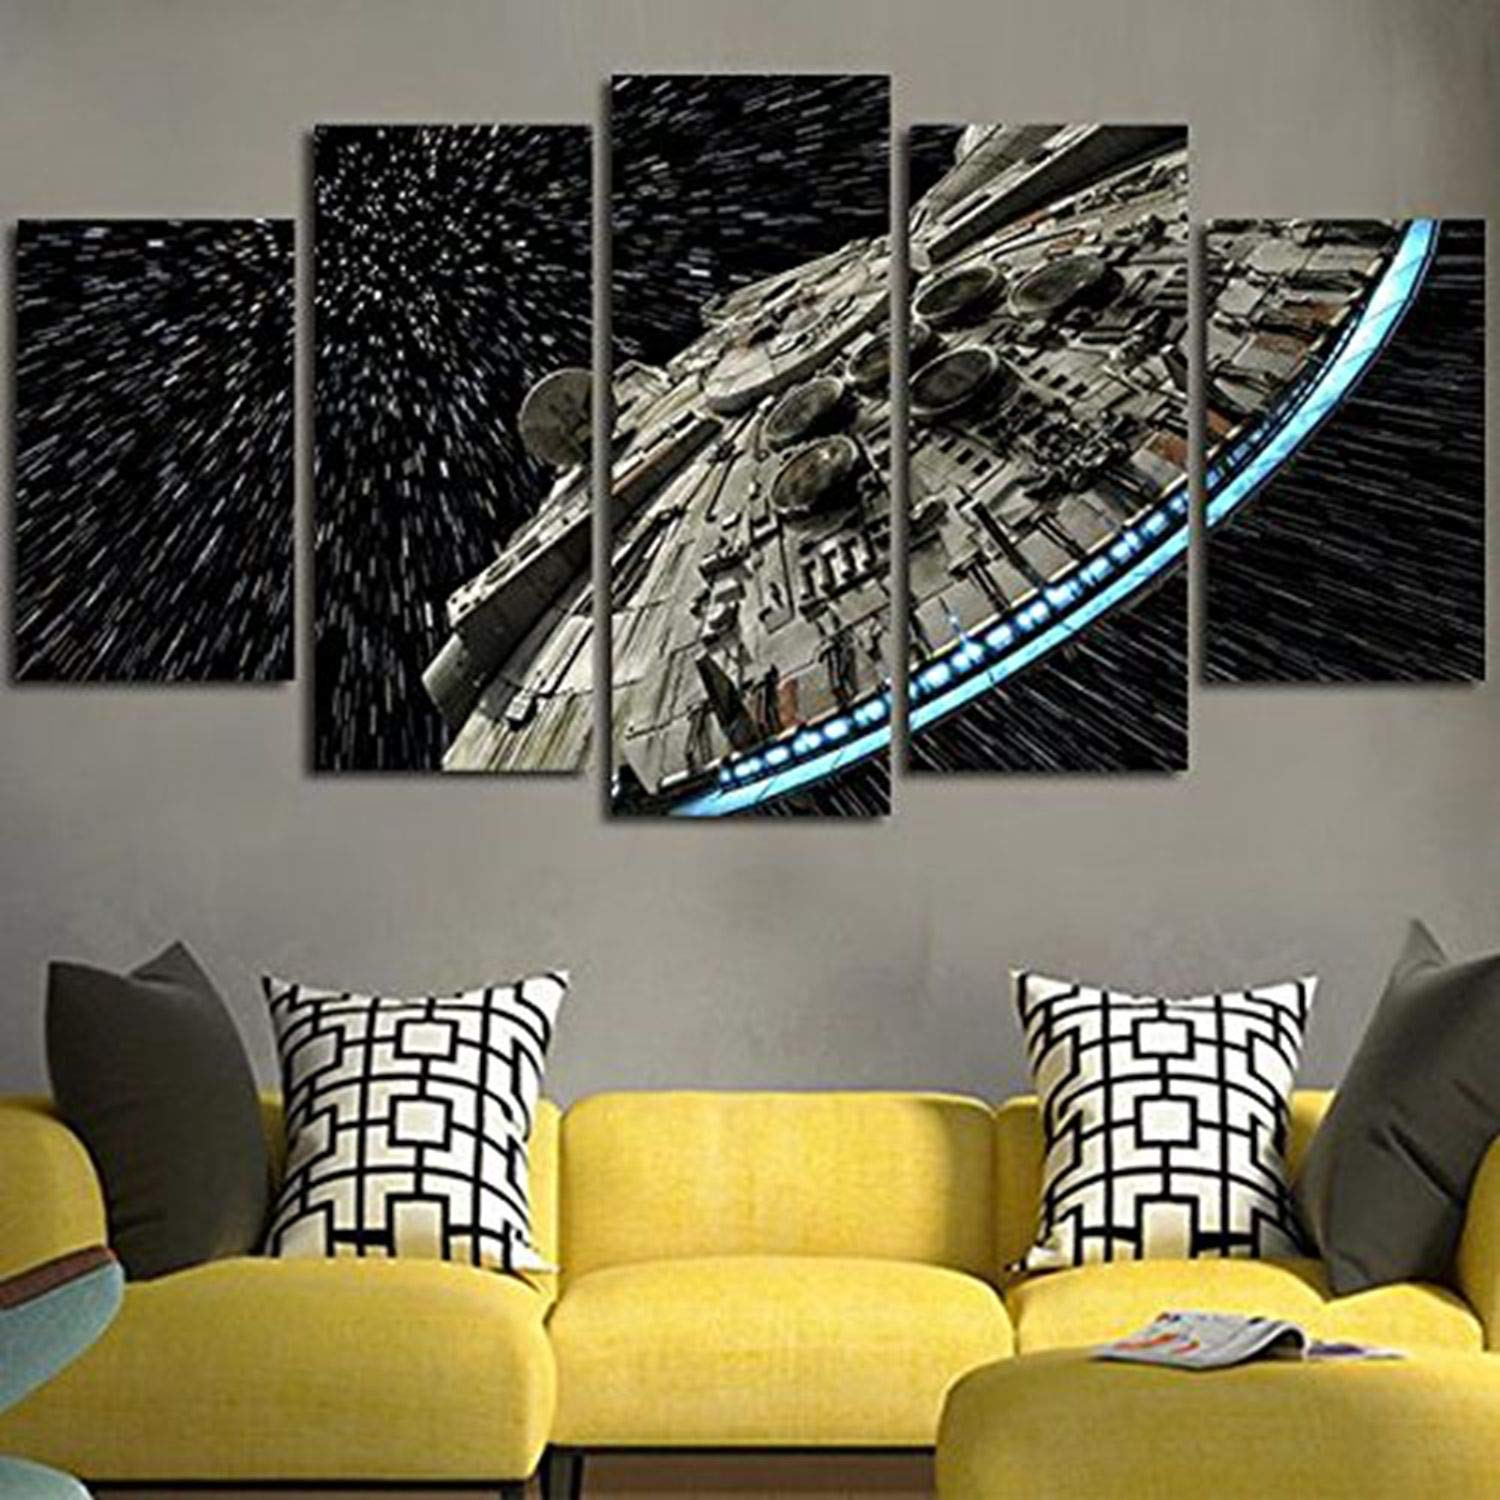 JESC Wall Decor Canvas Picture Star Poster 5 Pieces Art Home Framed HD Printed Canvas Painting (30x50cmx2,30x70cmx2,30x80cmx1) …